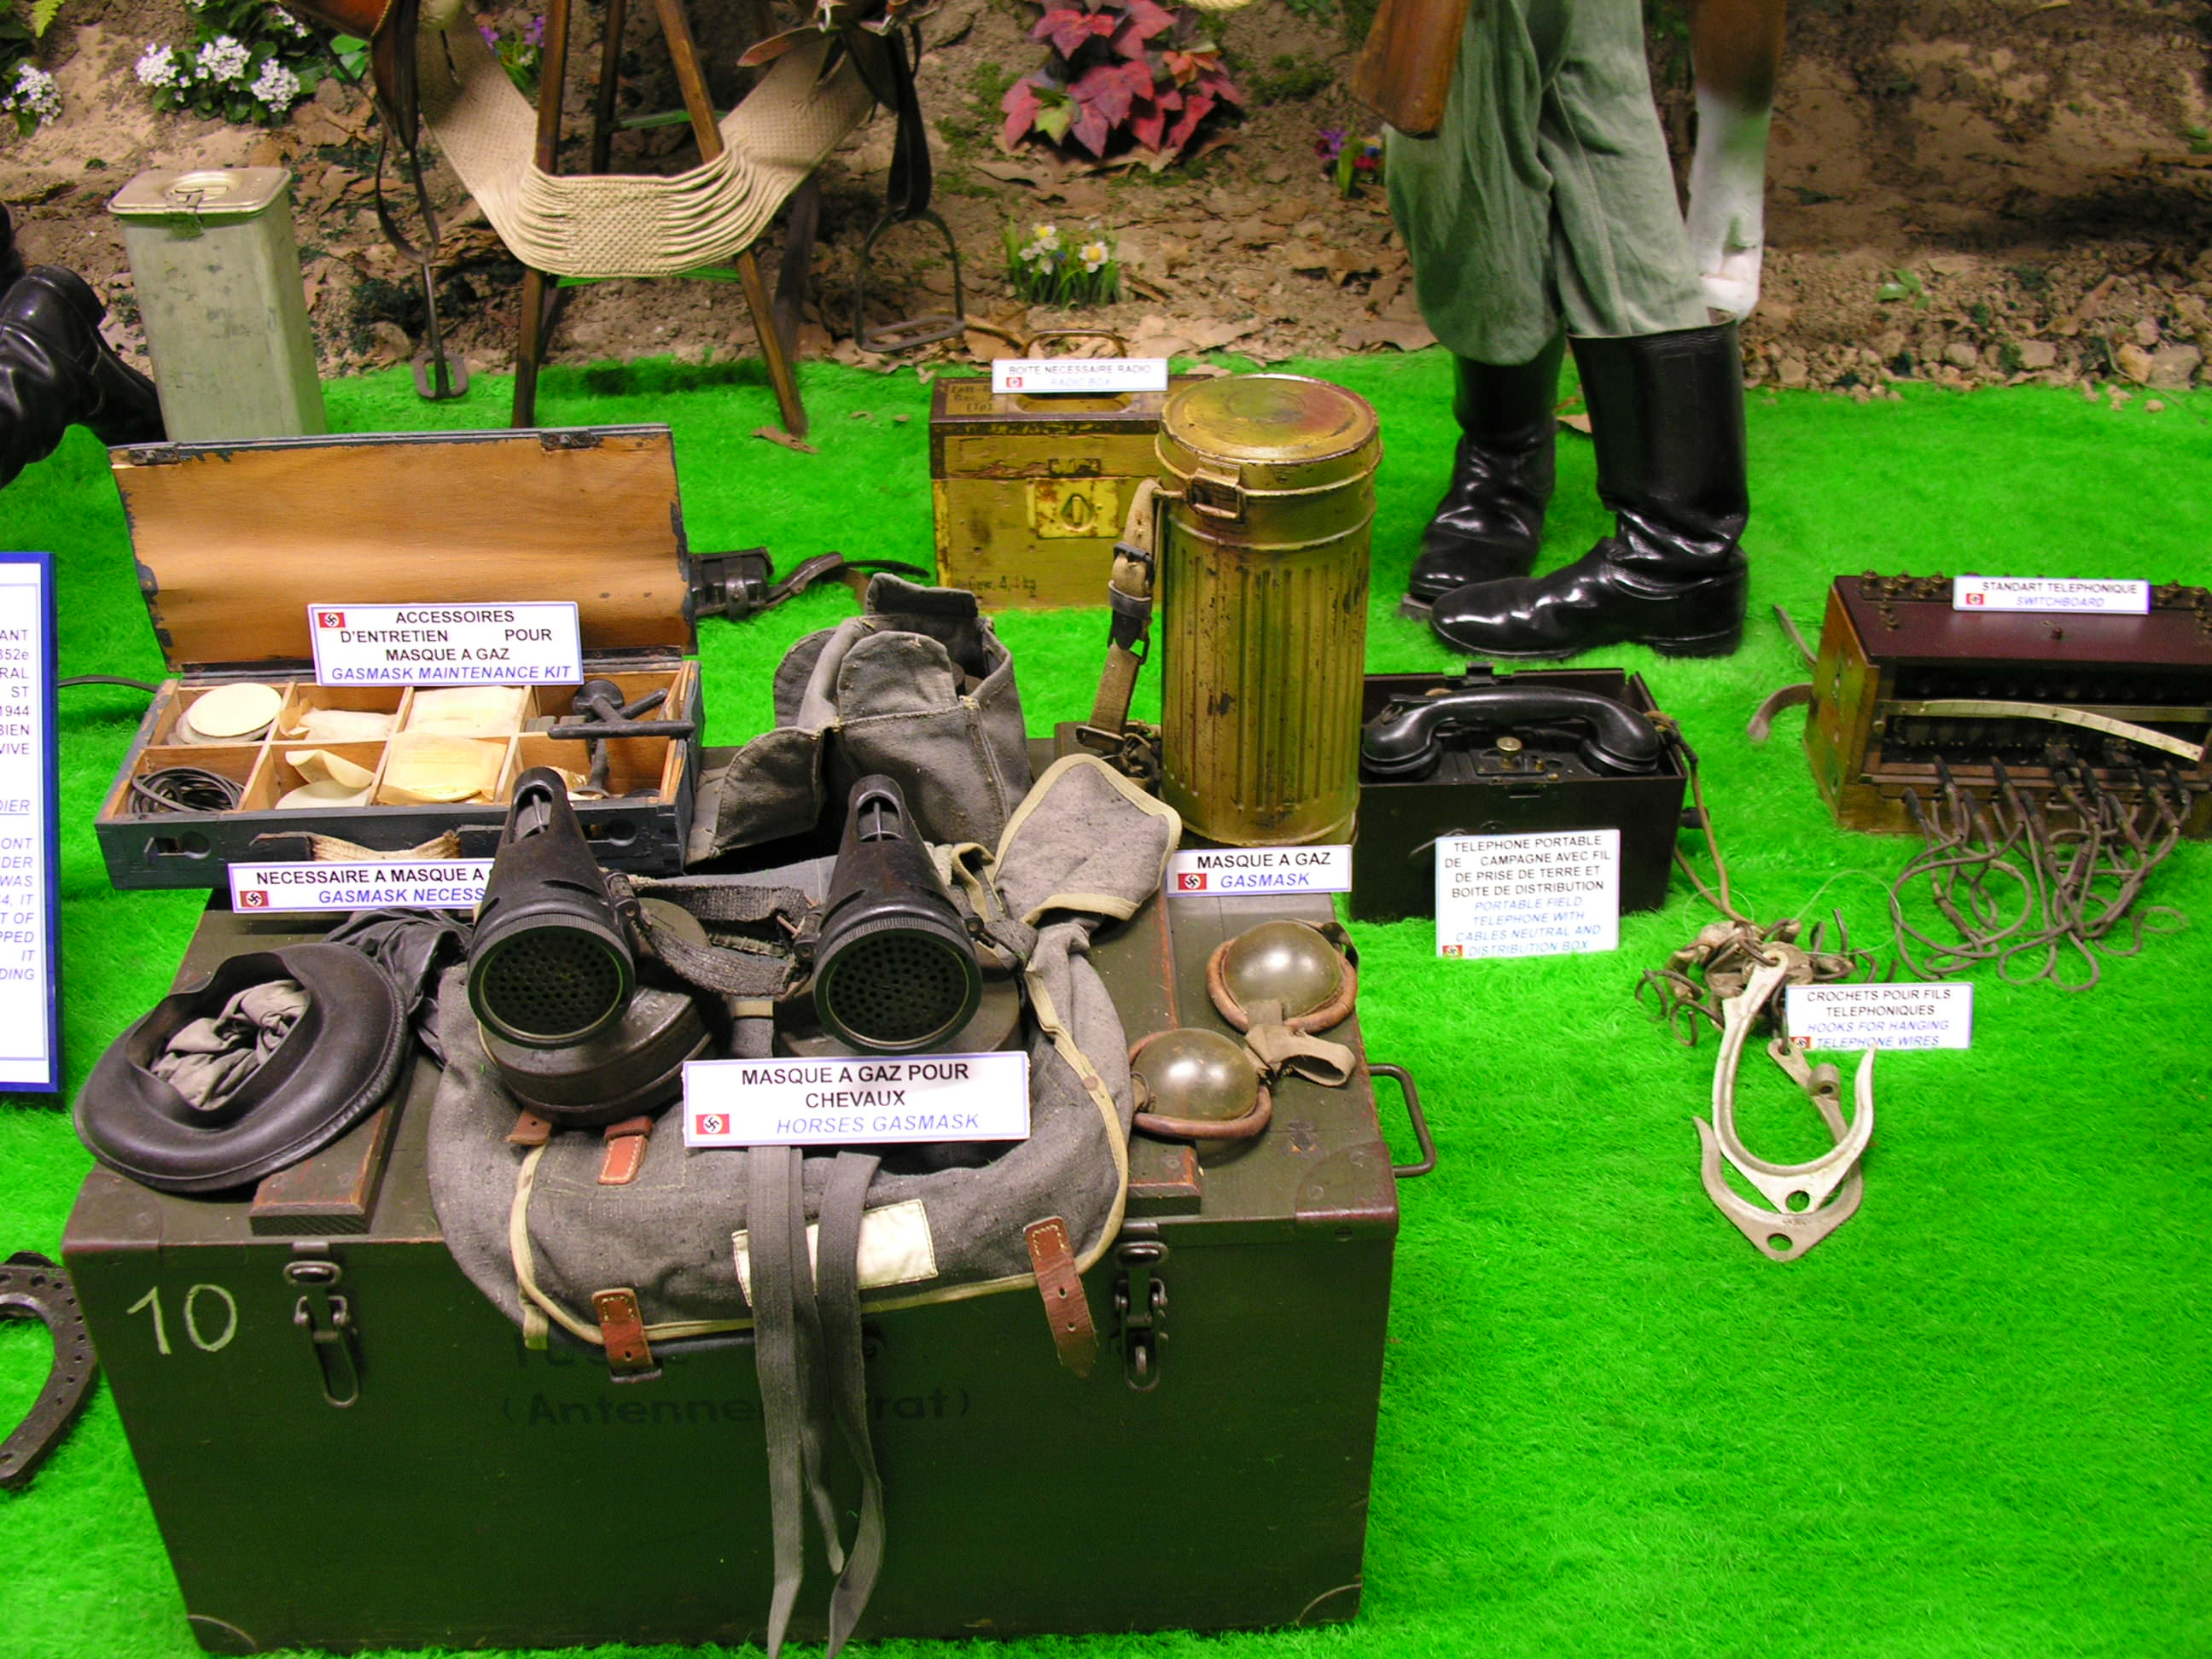 Equipment display in WWII Museum